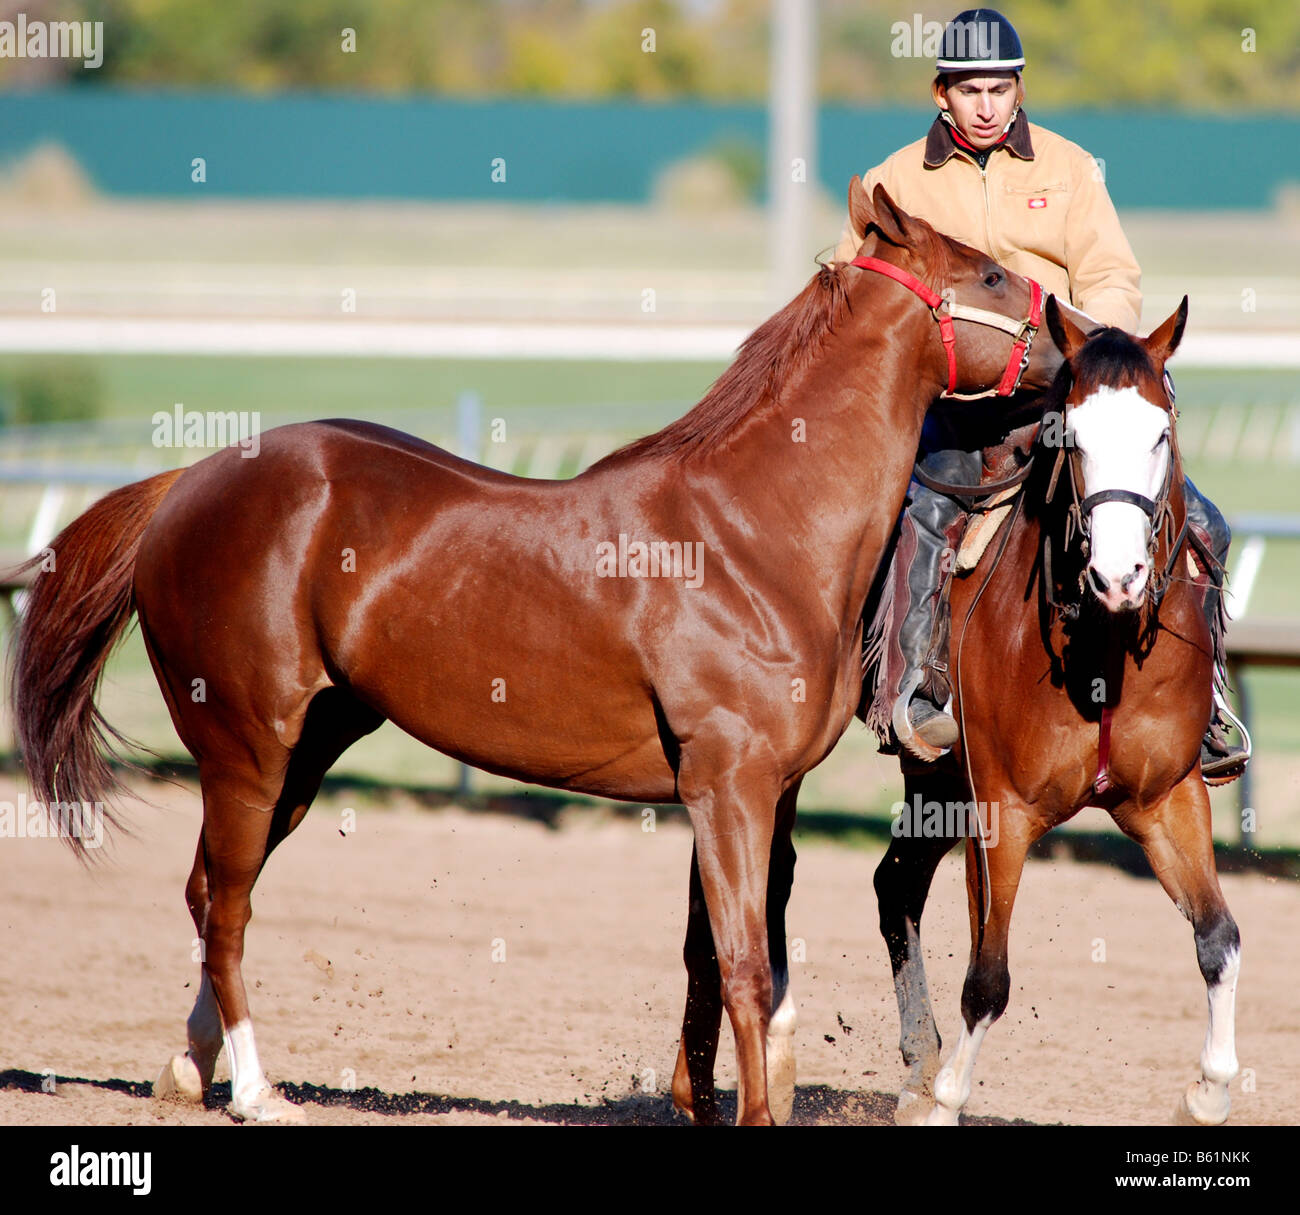 trainer working out a two year old horse at a race track - Stock Image